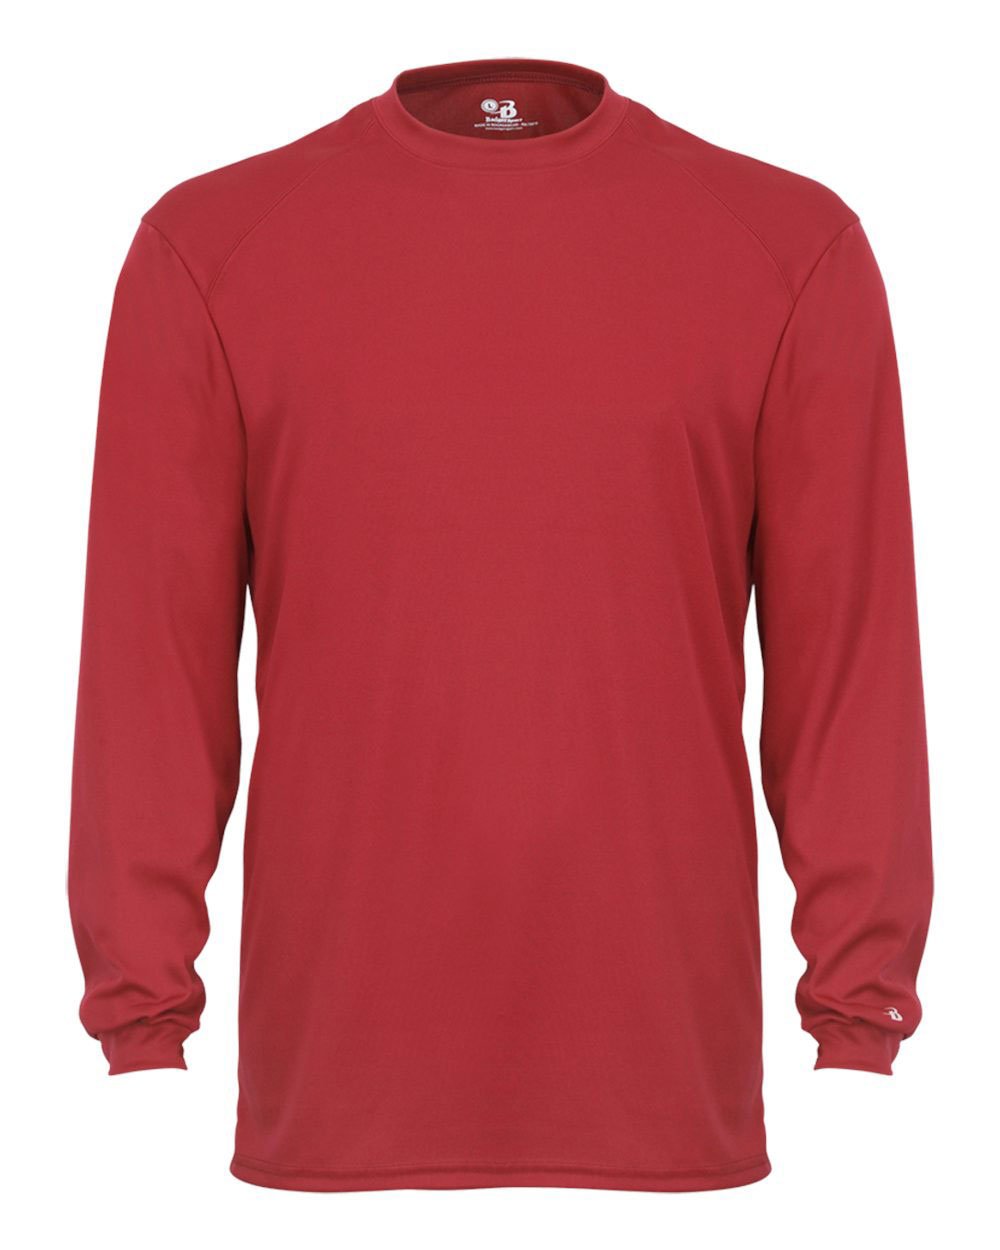 Badger Mens B-Tech Long Sleeve Tee